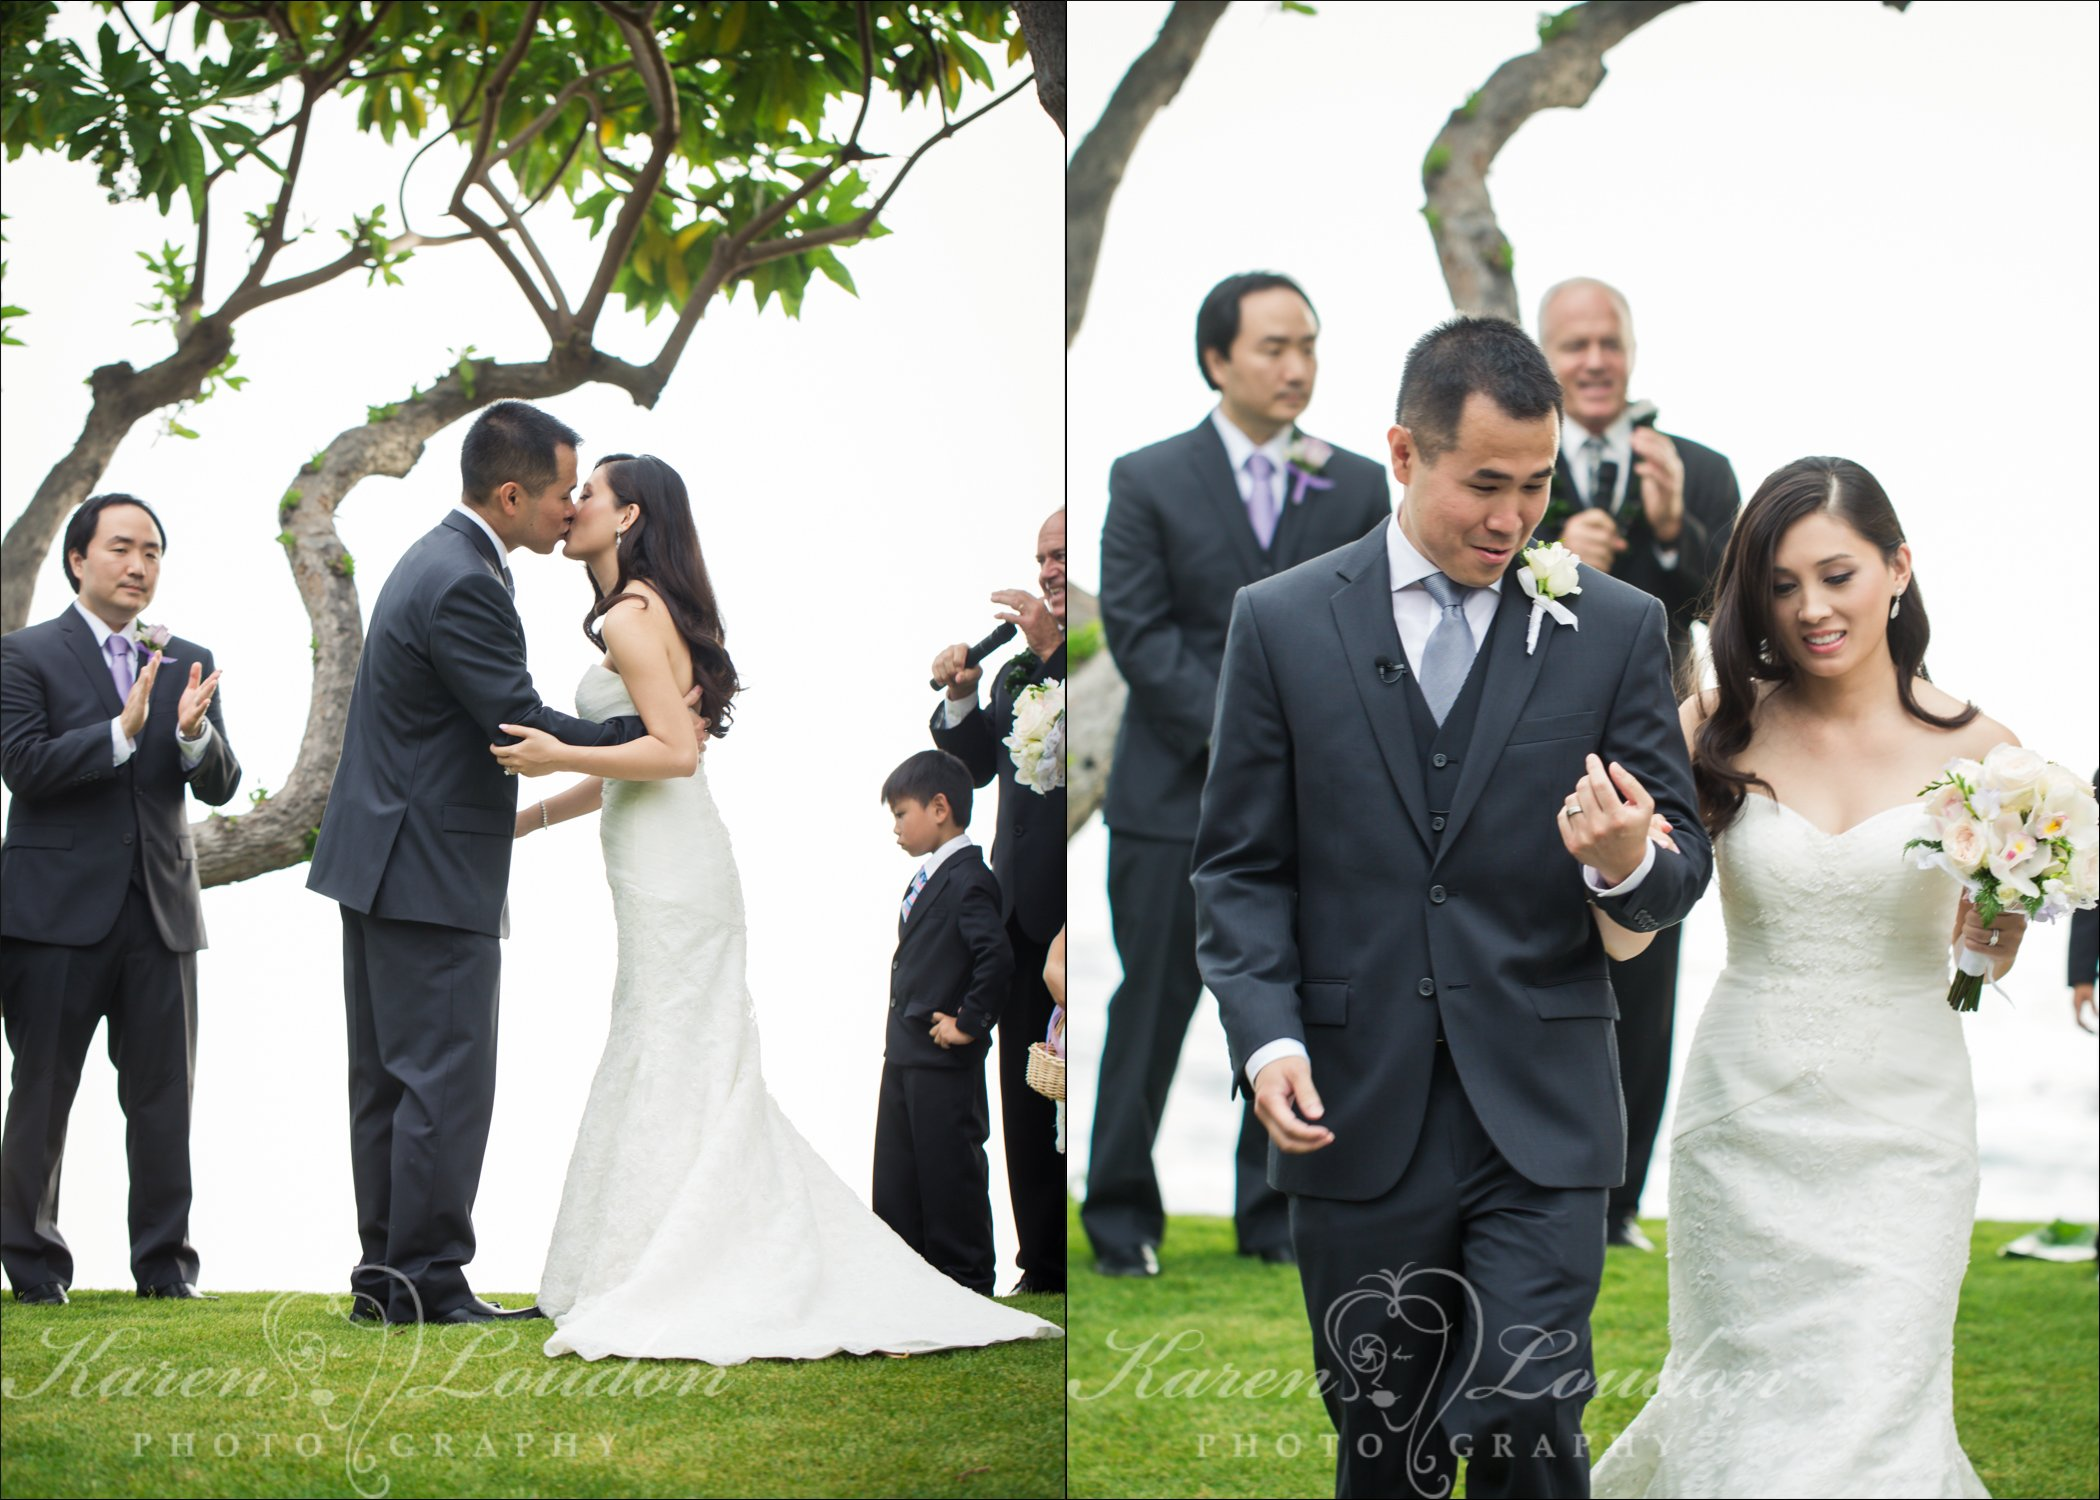 Kona coast wedding photographer